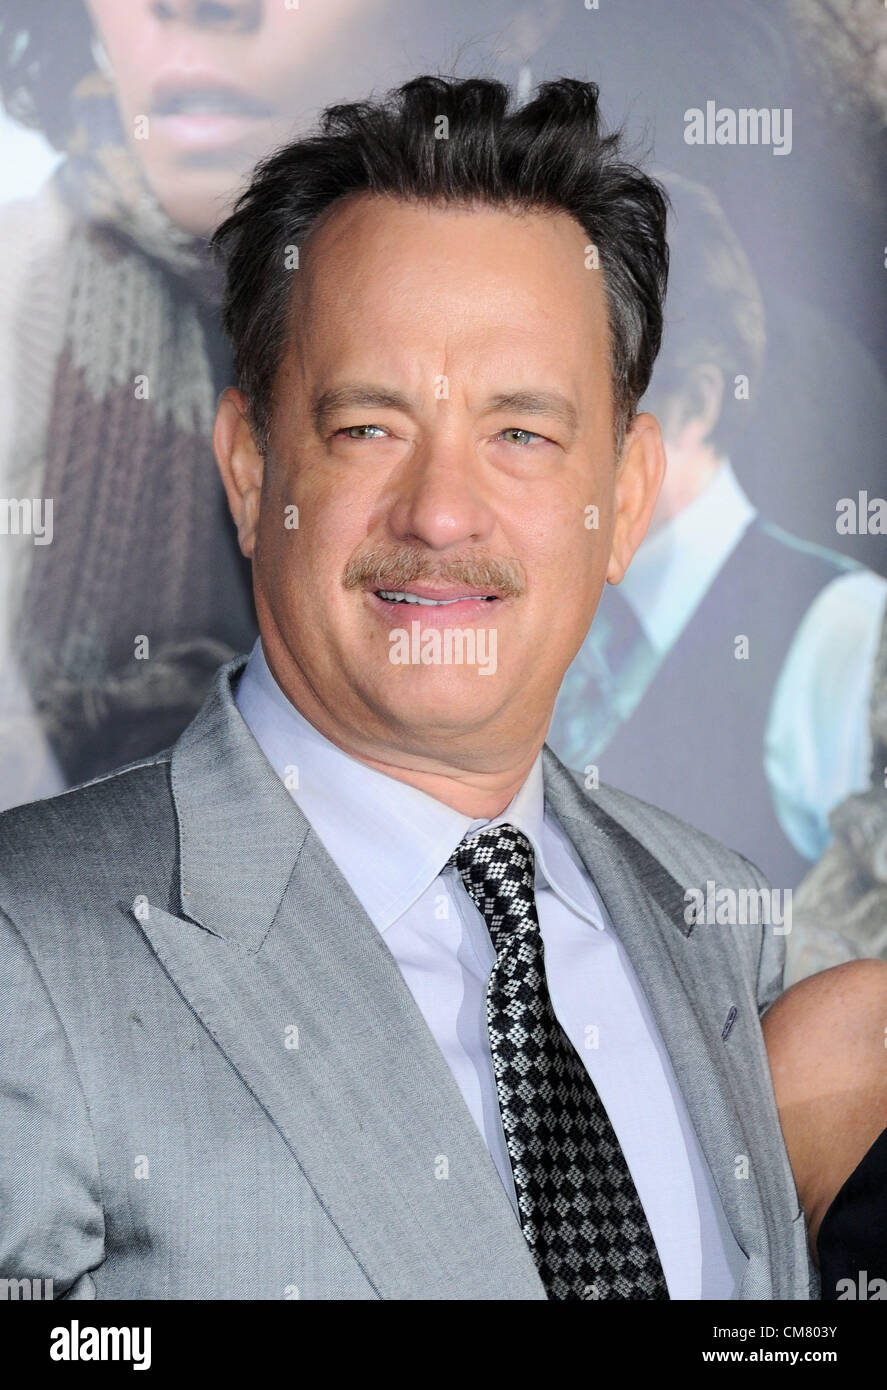 Los Angeles, USA. 24th October 2012. Tom Hanks arriving at the film premiere of 'Cloud Atlas' in Los Angeles - Stock Image